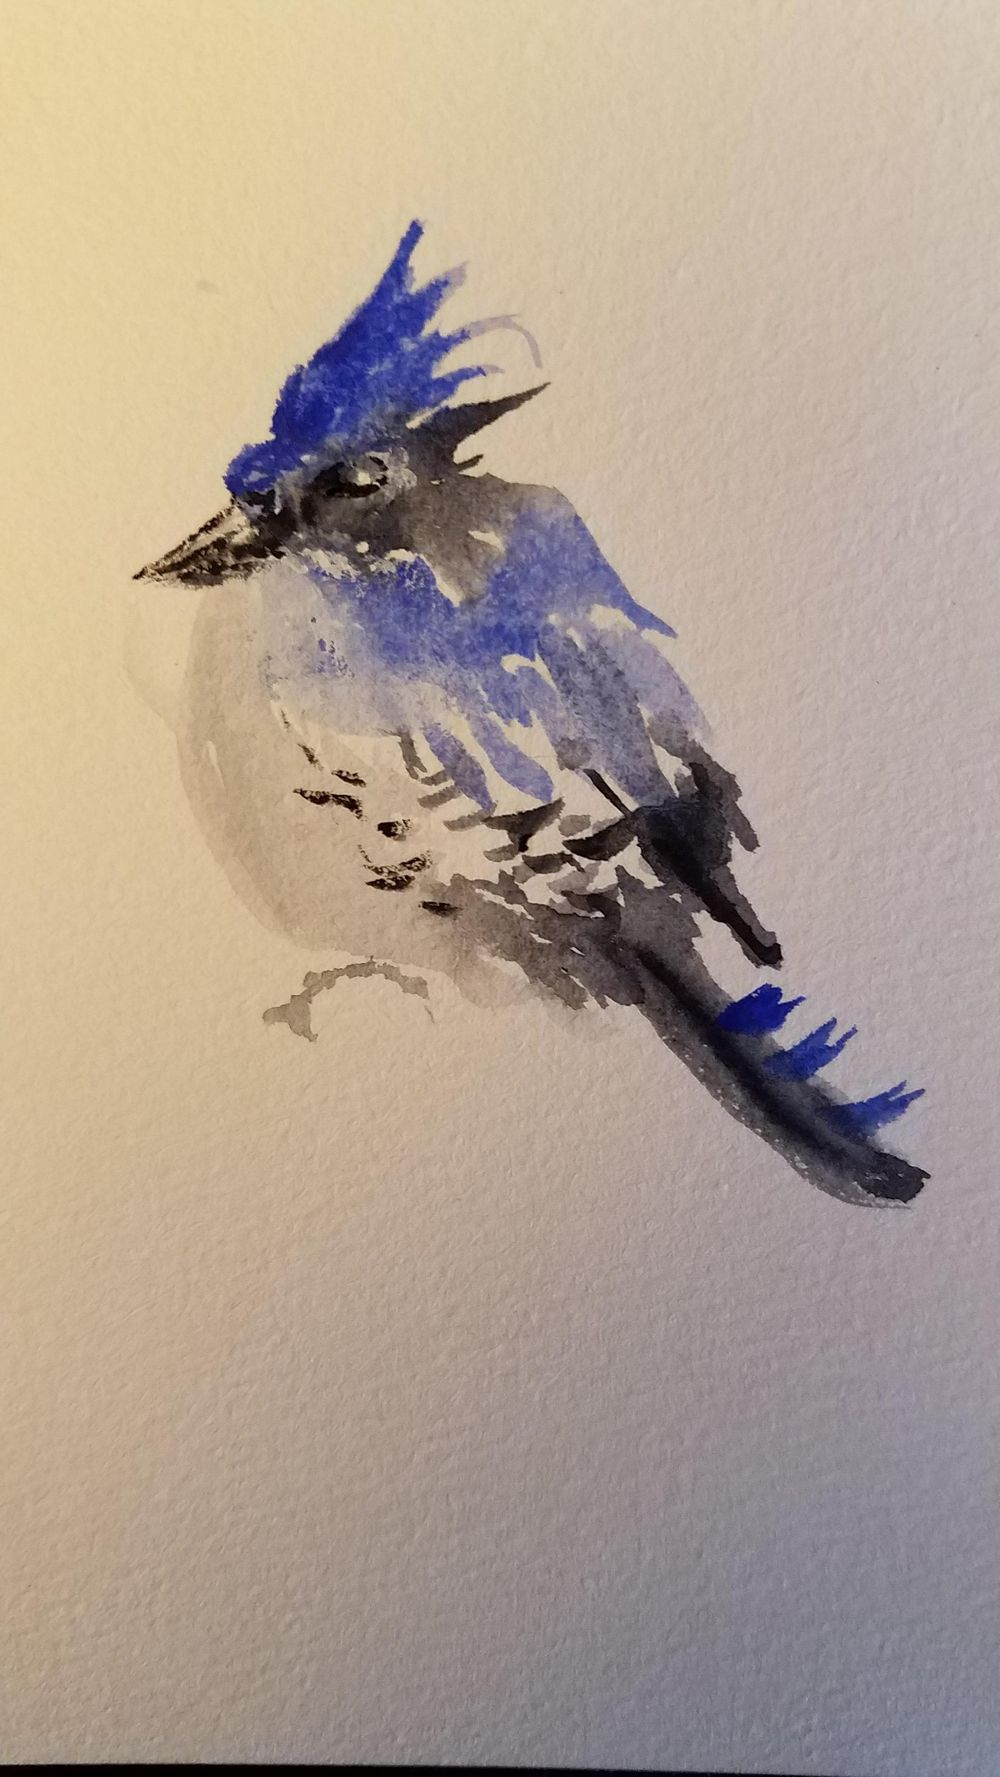 bluejay - image 1 - student project